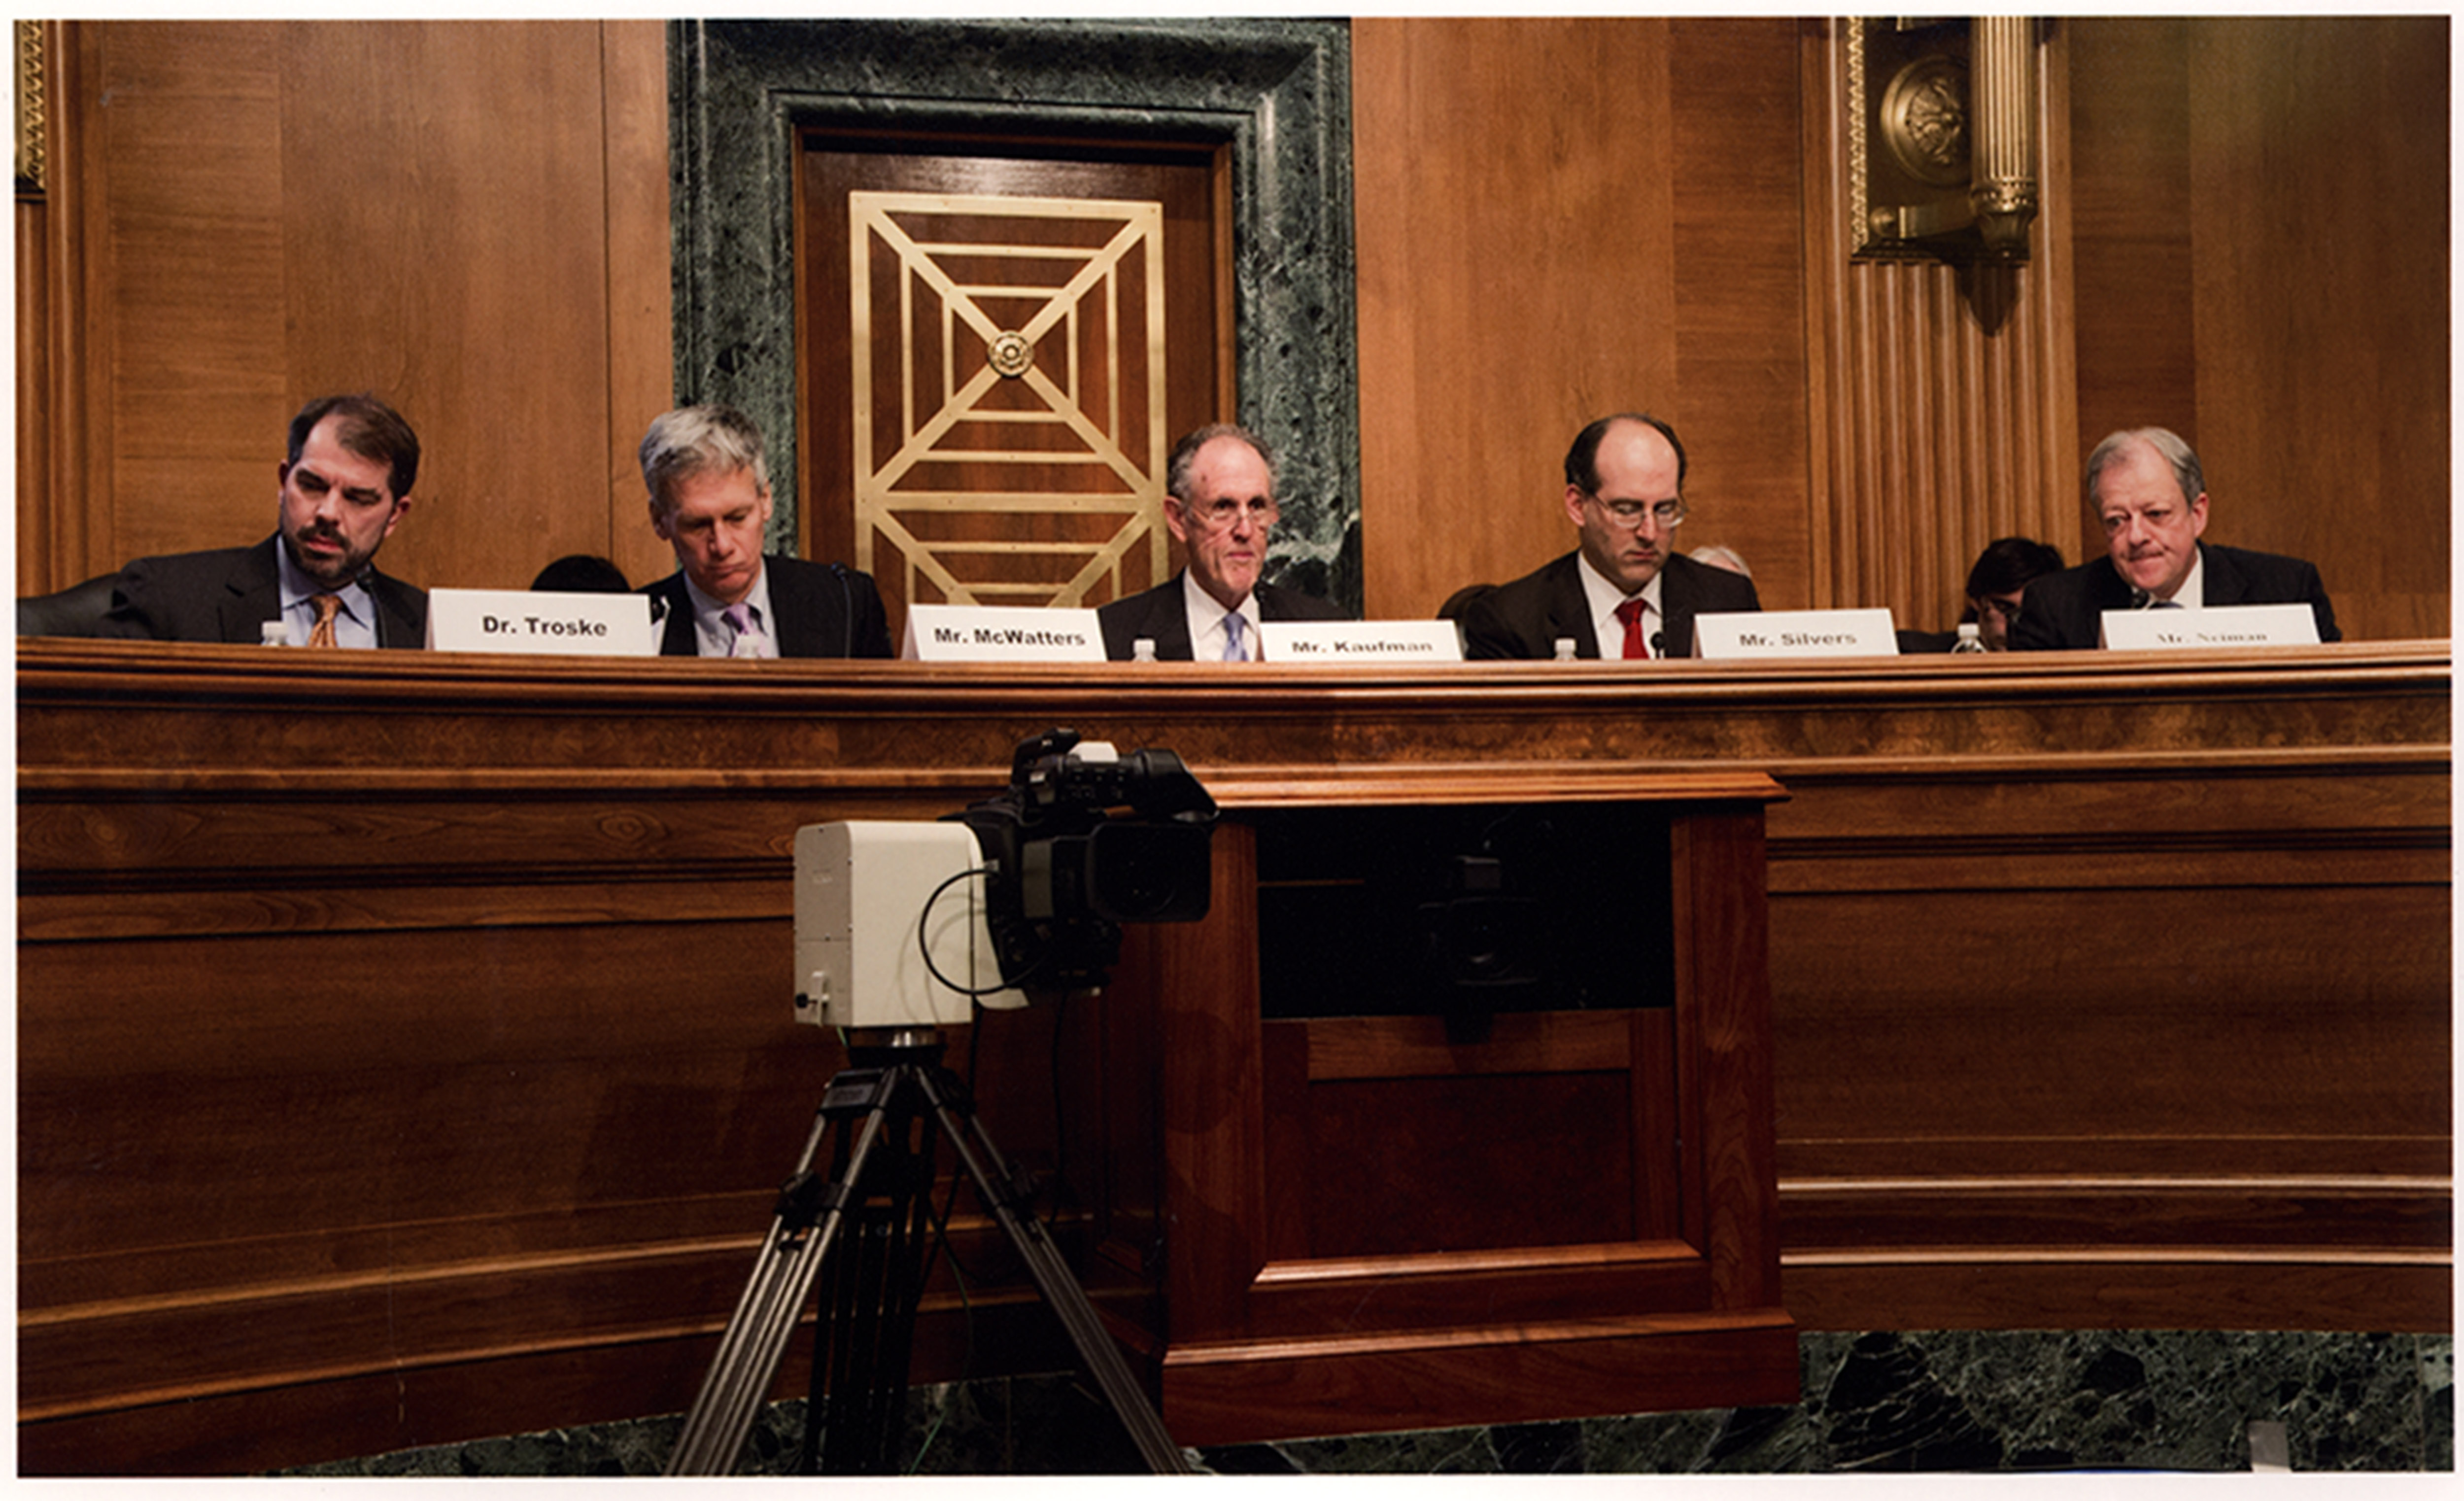 Photograph of Congressional Oversight Panel hearing, circa 2010 October – 2011 March